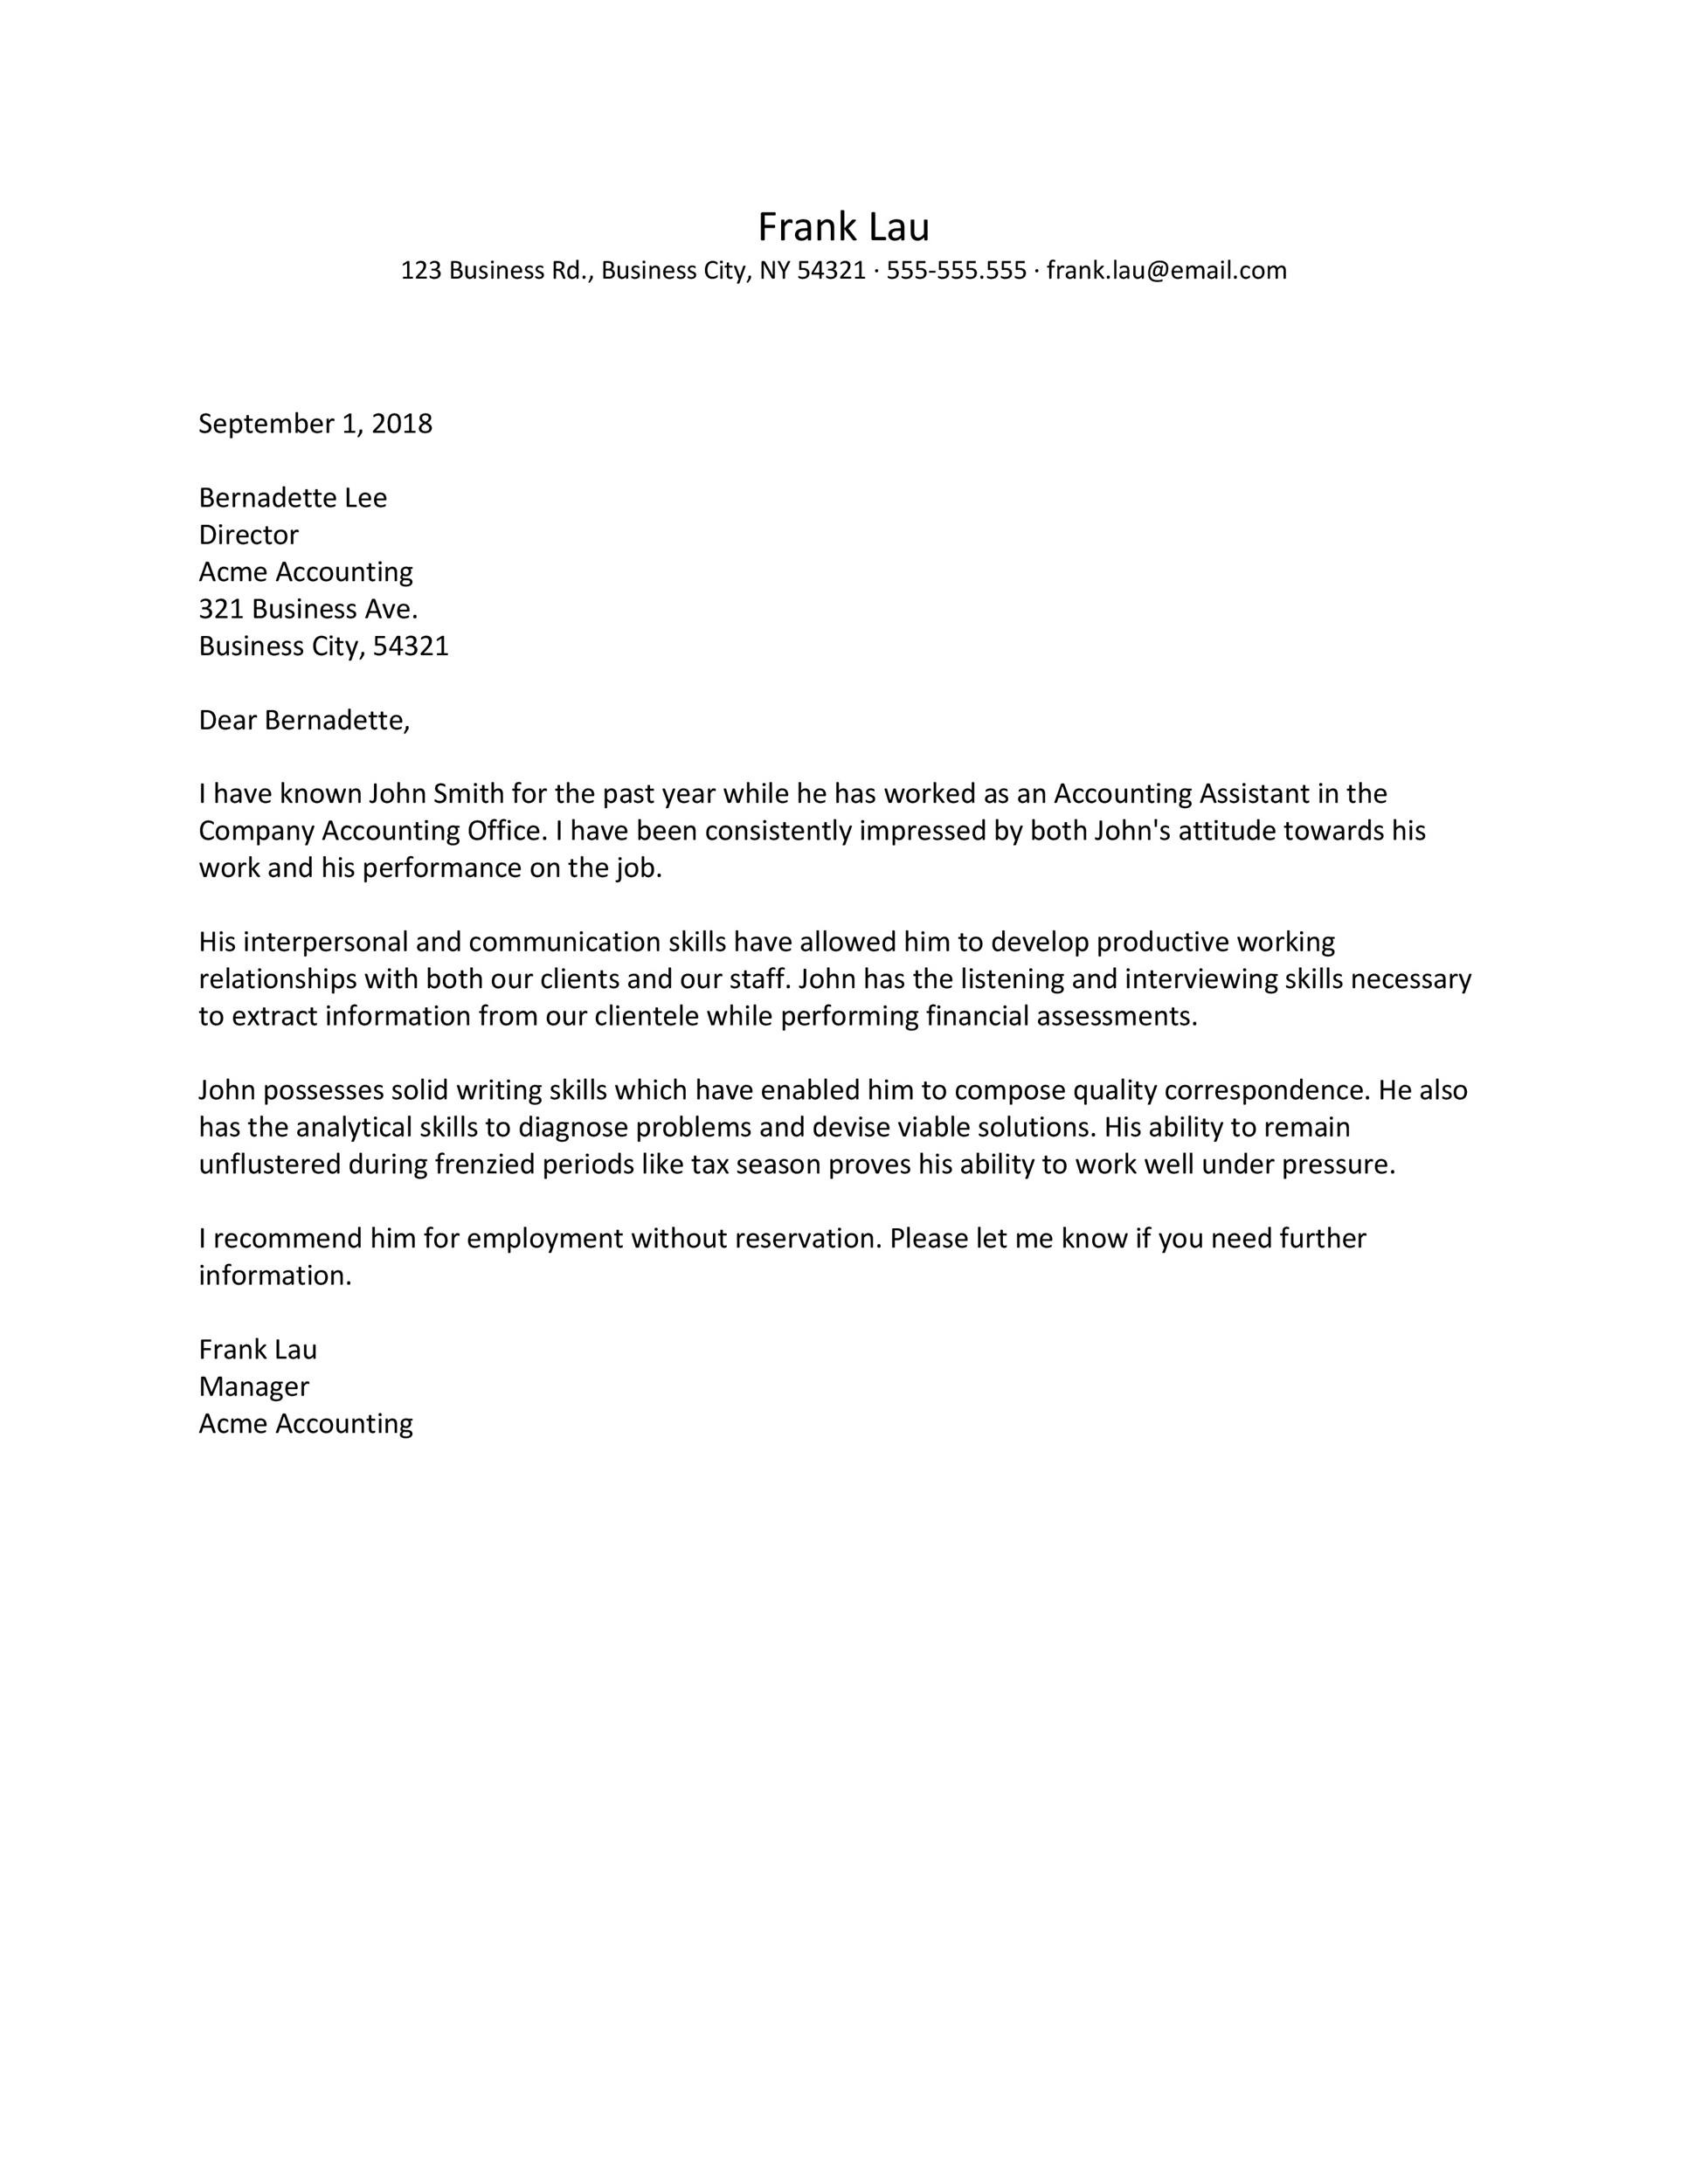 Template For Letter Of Recommendation from templatelab.com